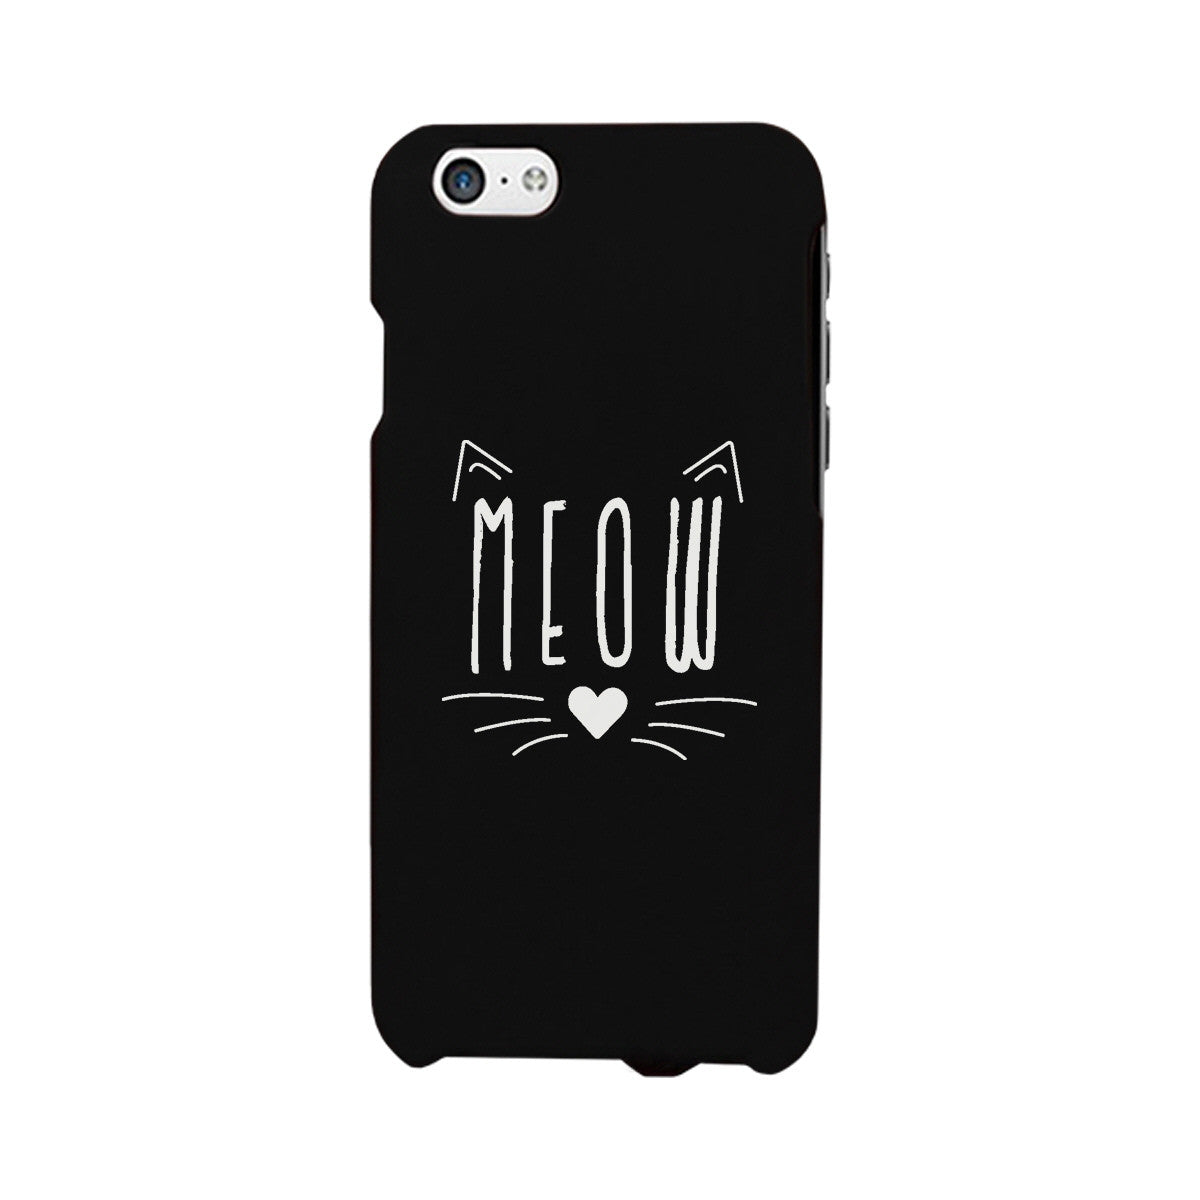 Meow Funny Phone Case Cute Graphic Design Printed Phone Cover Gift 365 In Love Matching Gifts Ideas